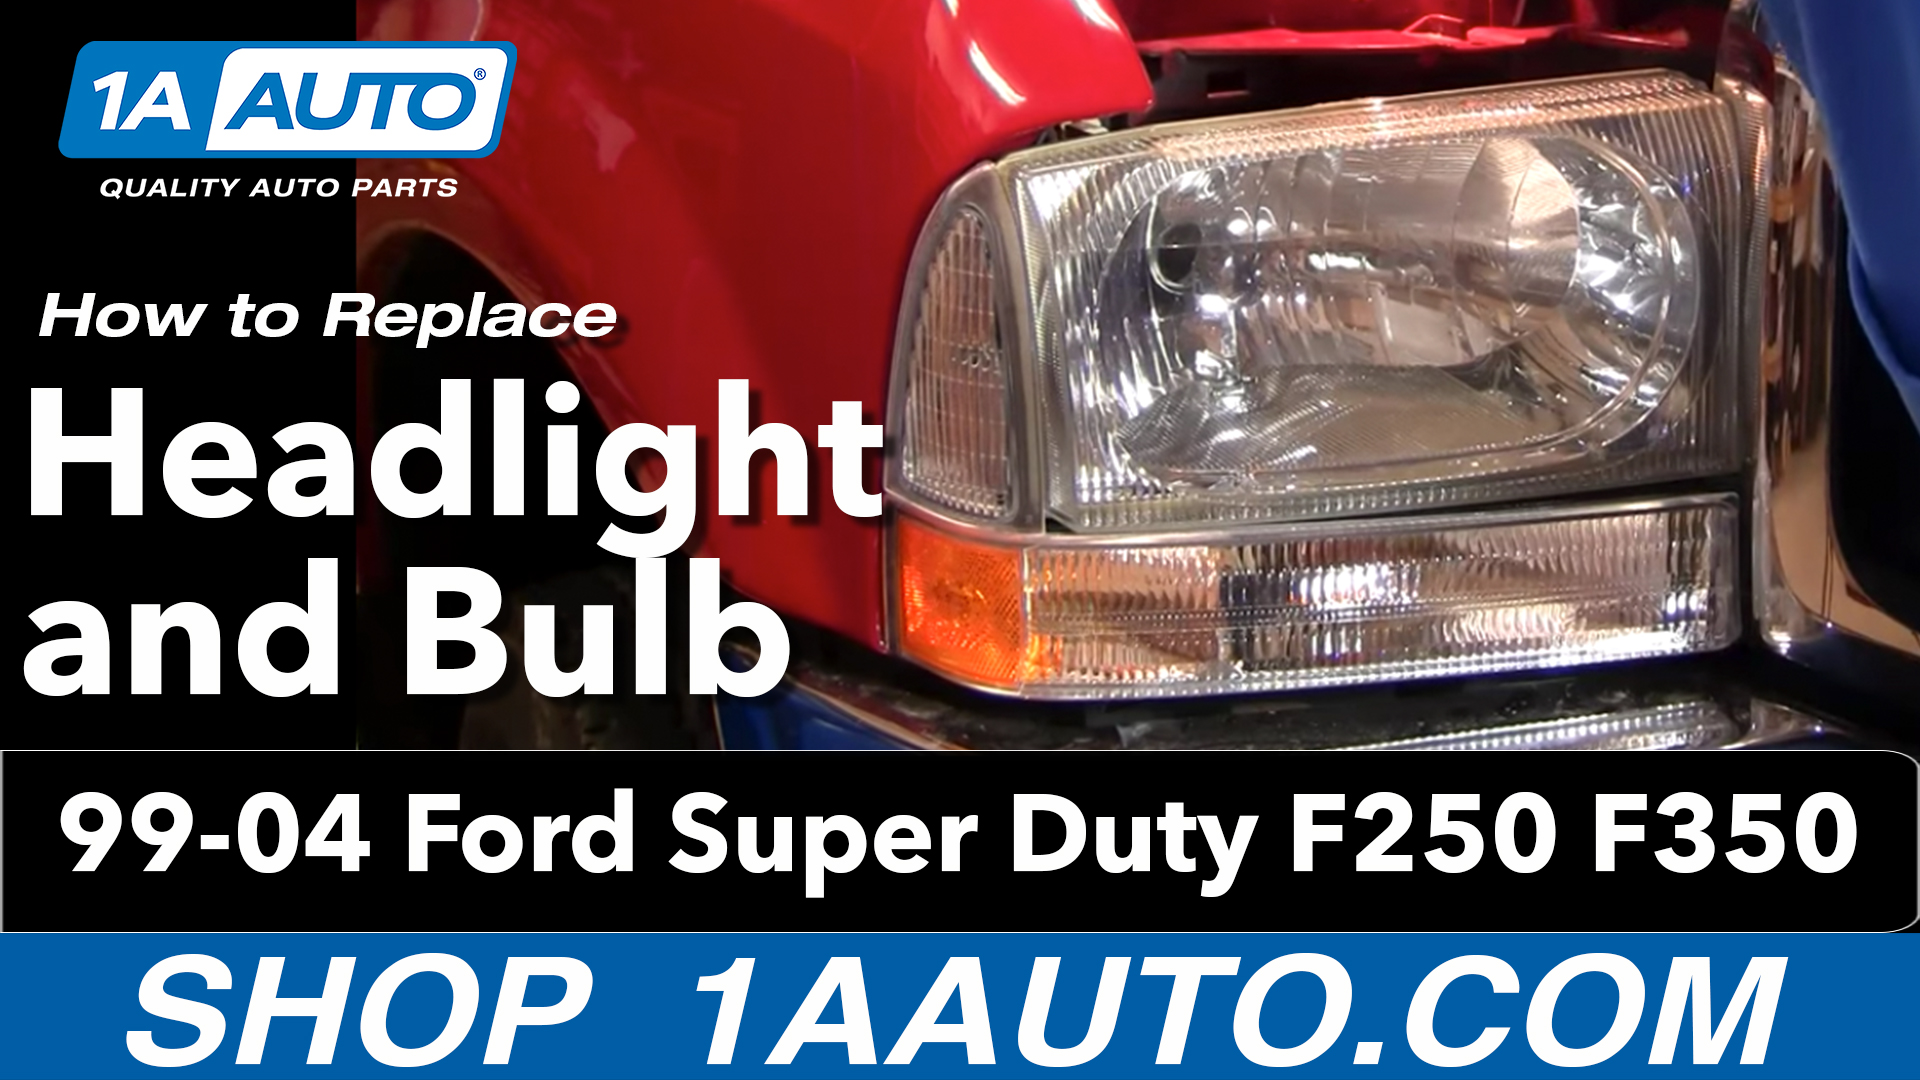 How To Replace Headlights 99 04 Ford F250 Super Duty 1a Auto